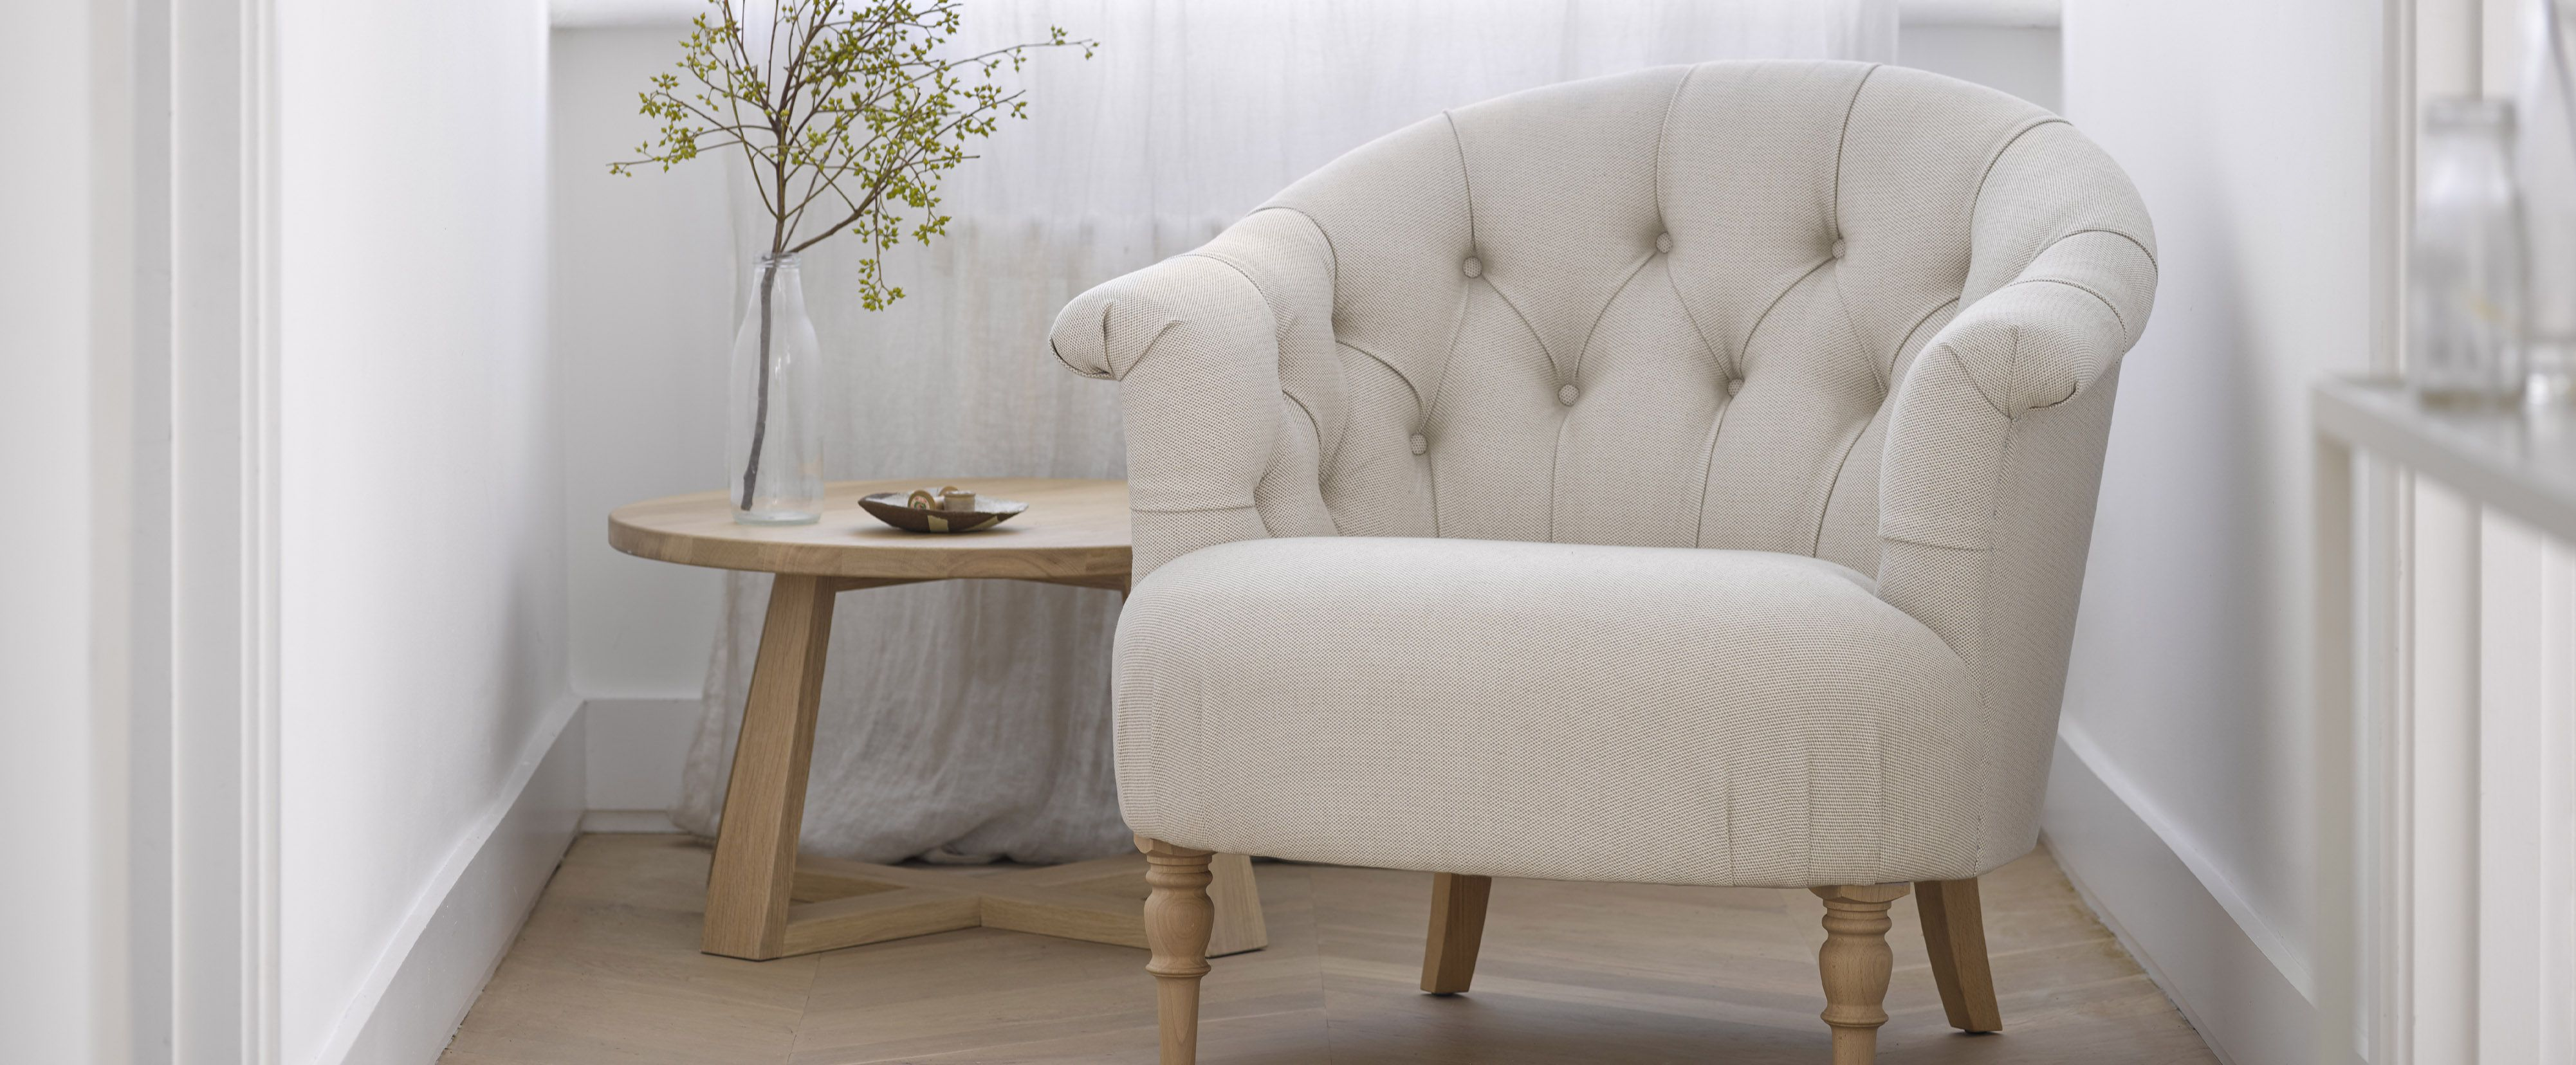 fabric-armchair.jpg